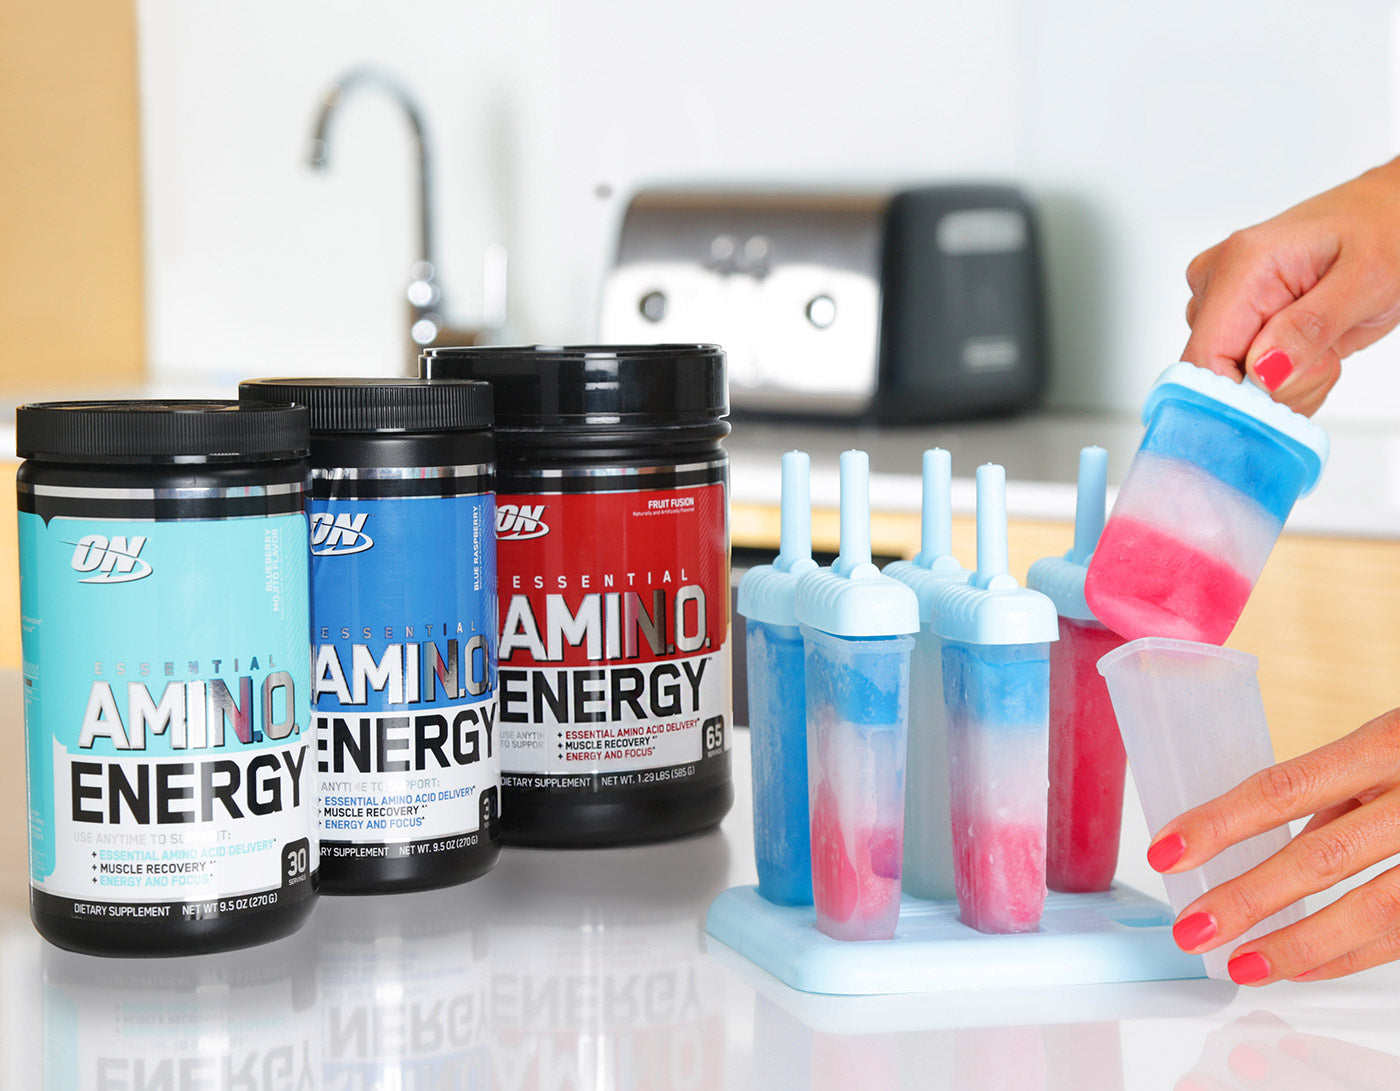 Optimum Nutrition Essential Amino Energy - Image